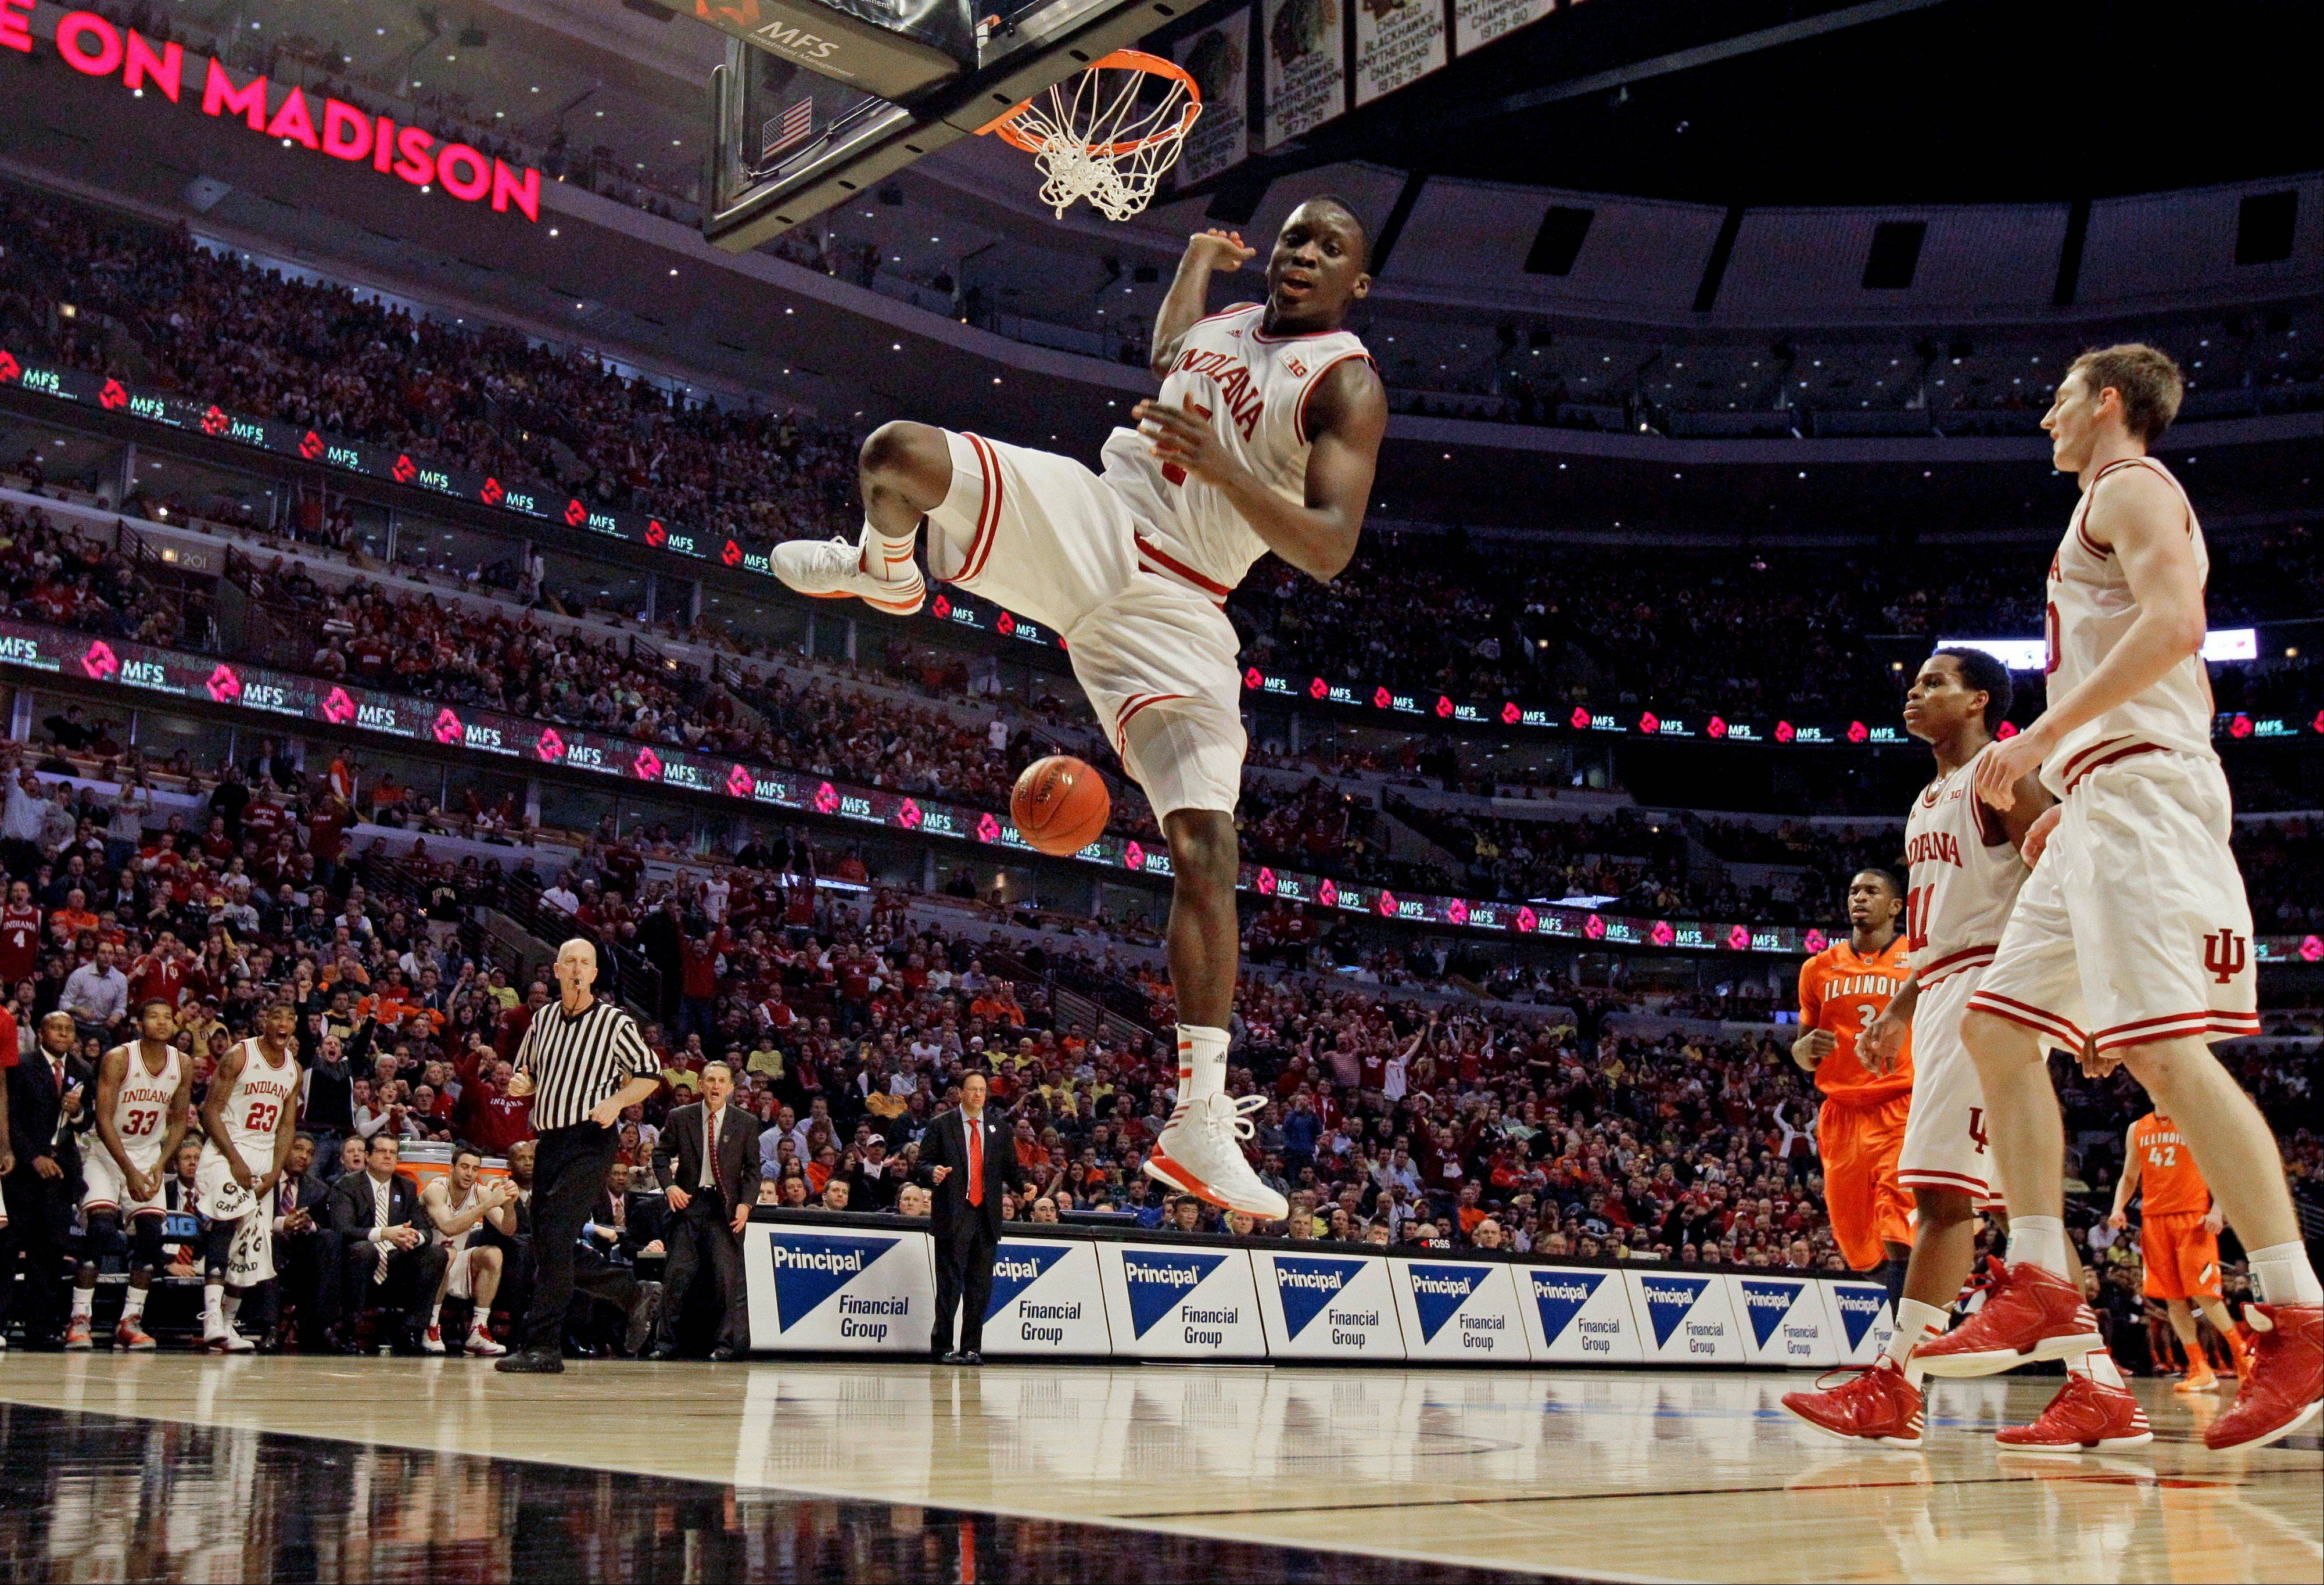 Indiana's Victor Oladipo finishes off a 360-degree dunk in the second half of Friday's Big Ten Tournament game against Illinois.